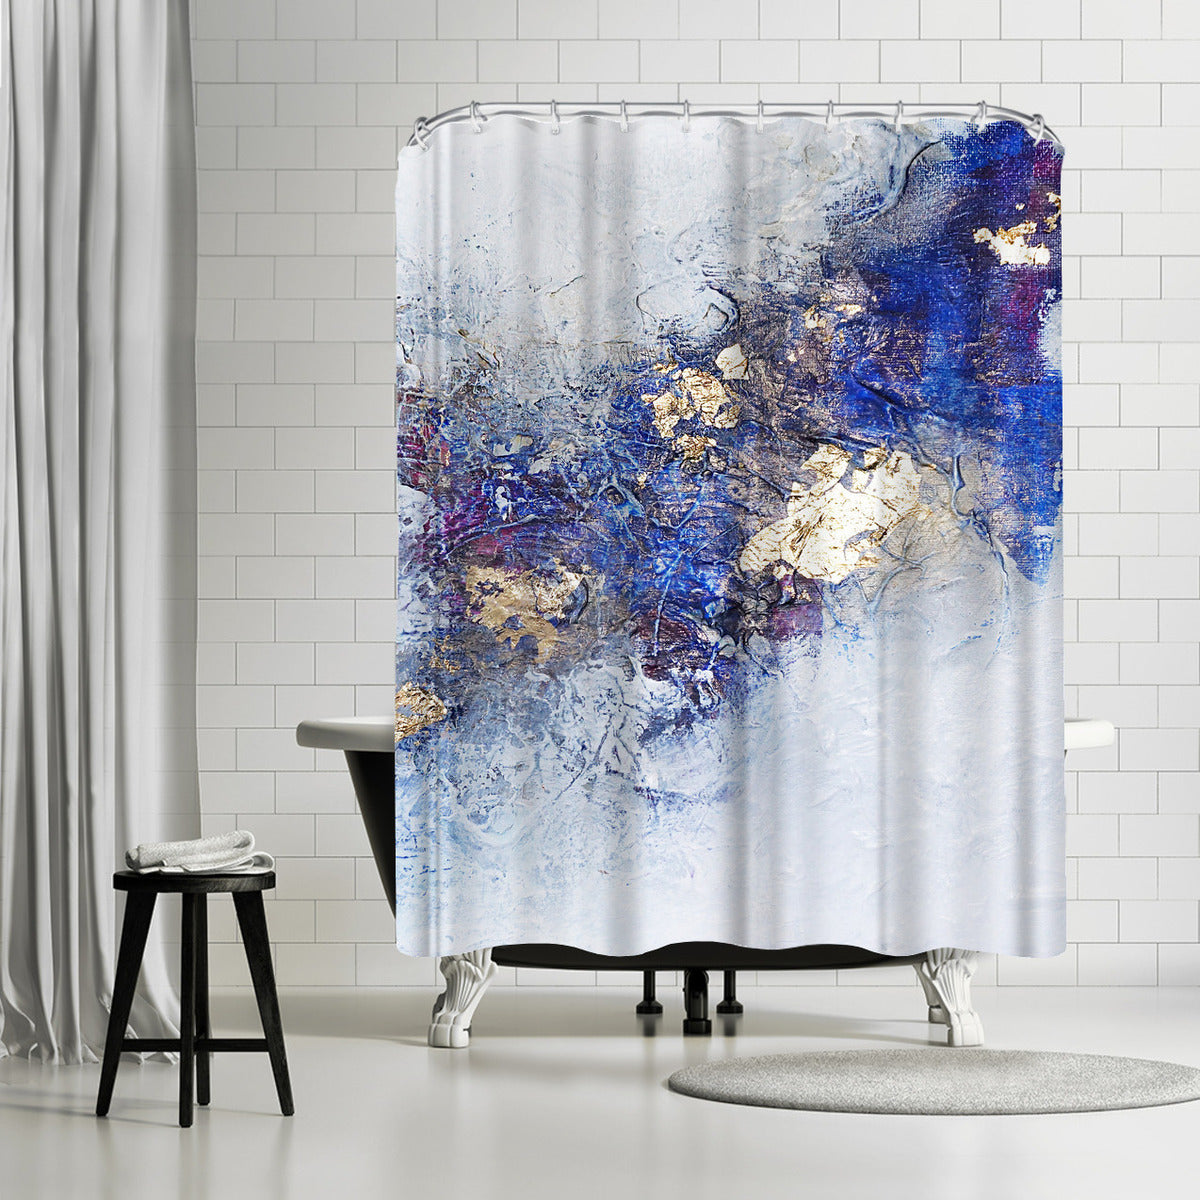 Fading Away by Christine Olmstead Shower Curtain - Shower Curtain - Americanflat